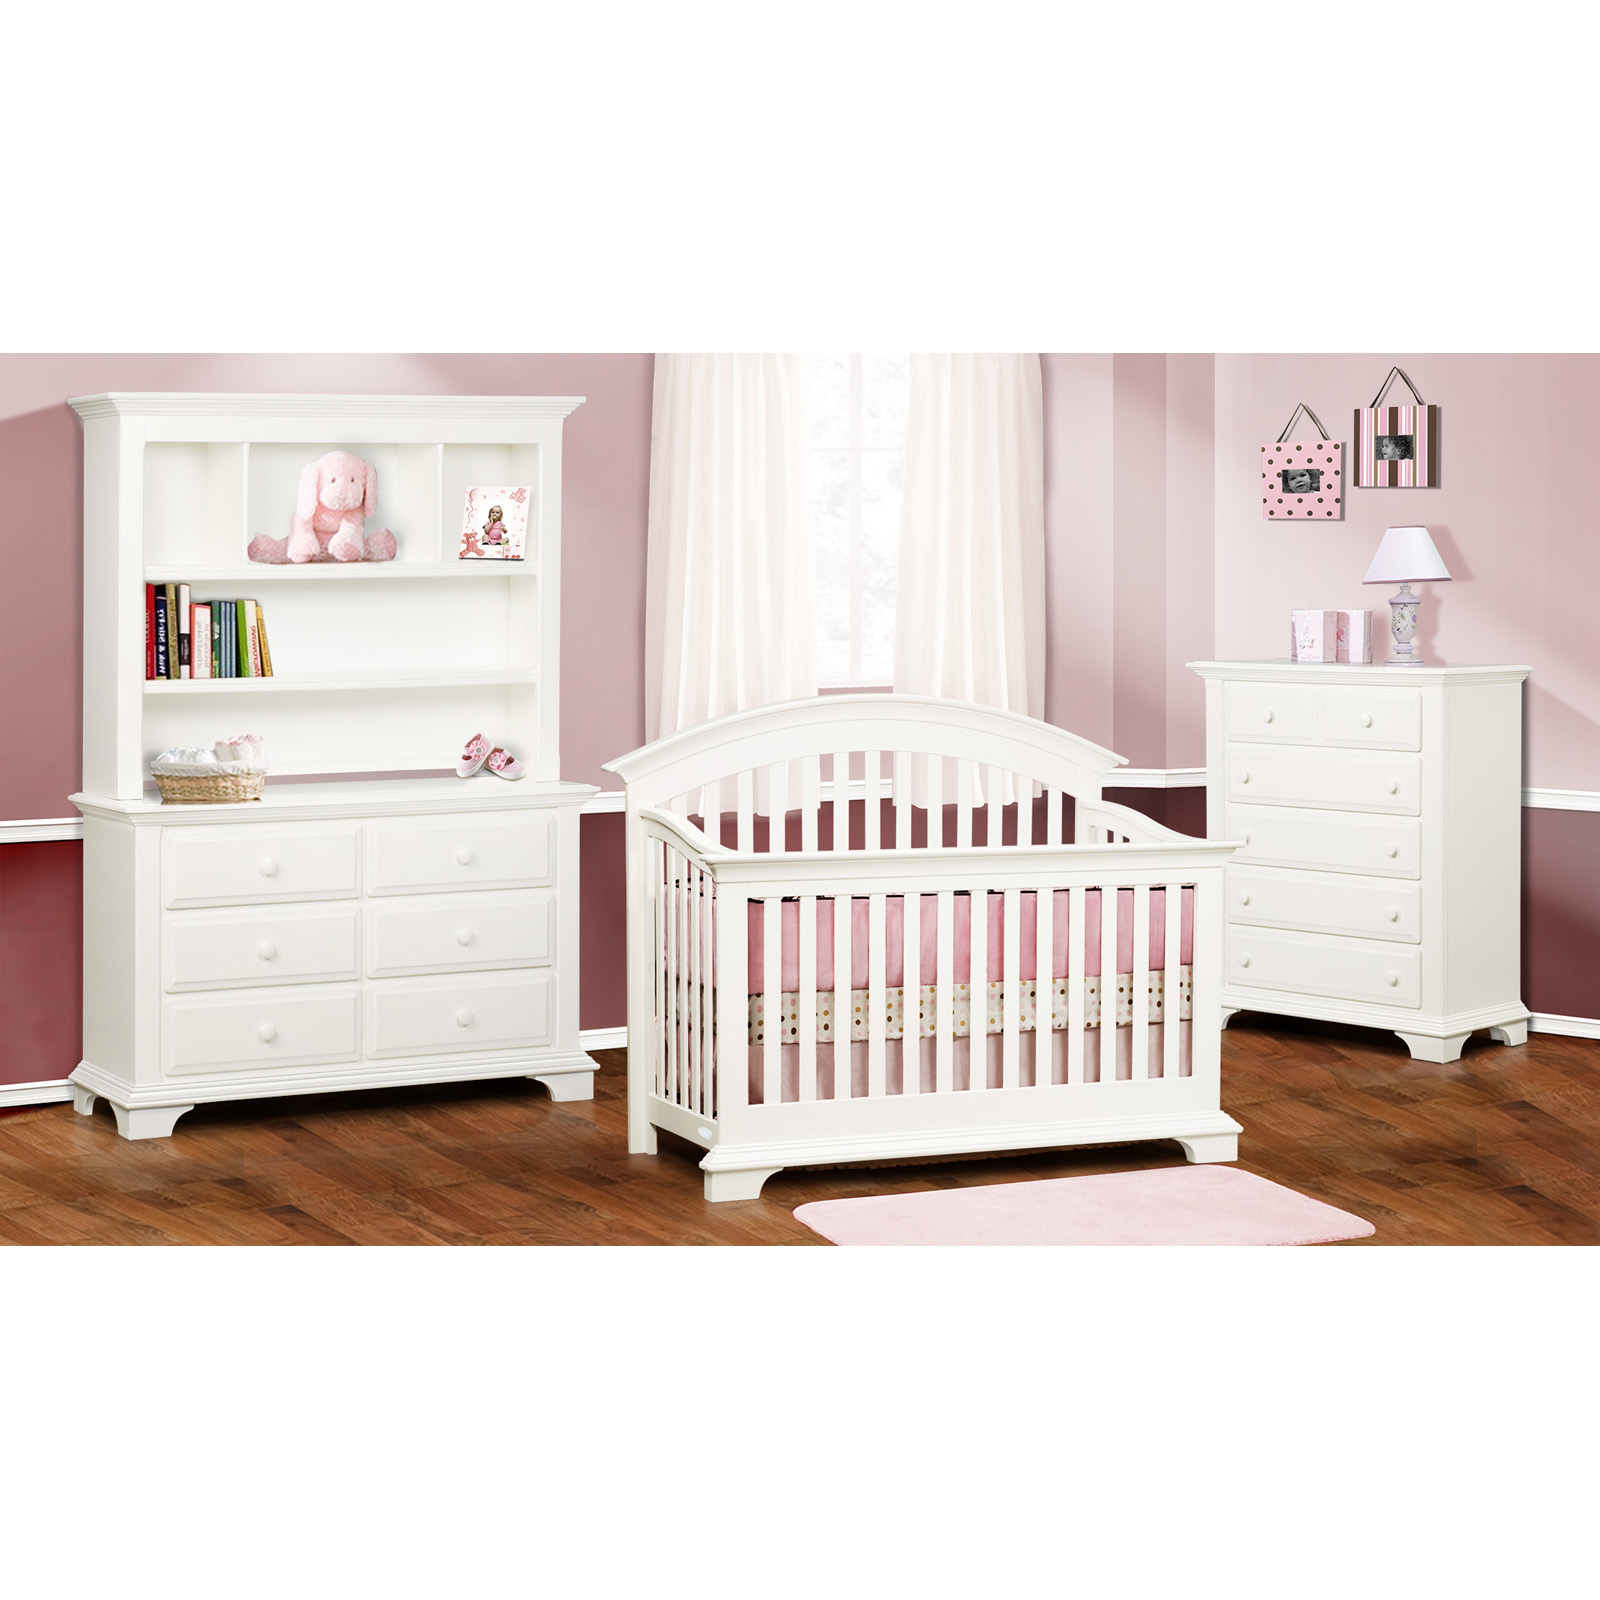 Cribs for Sale | Hayneedle Baby Furniture